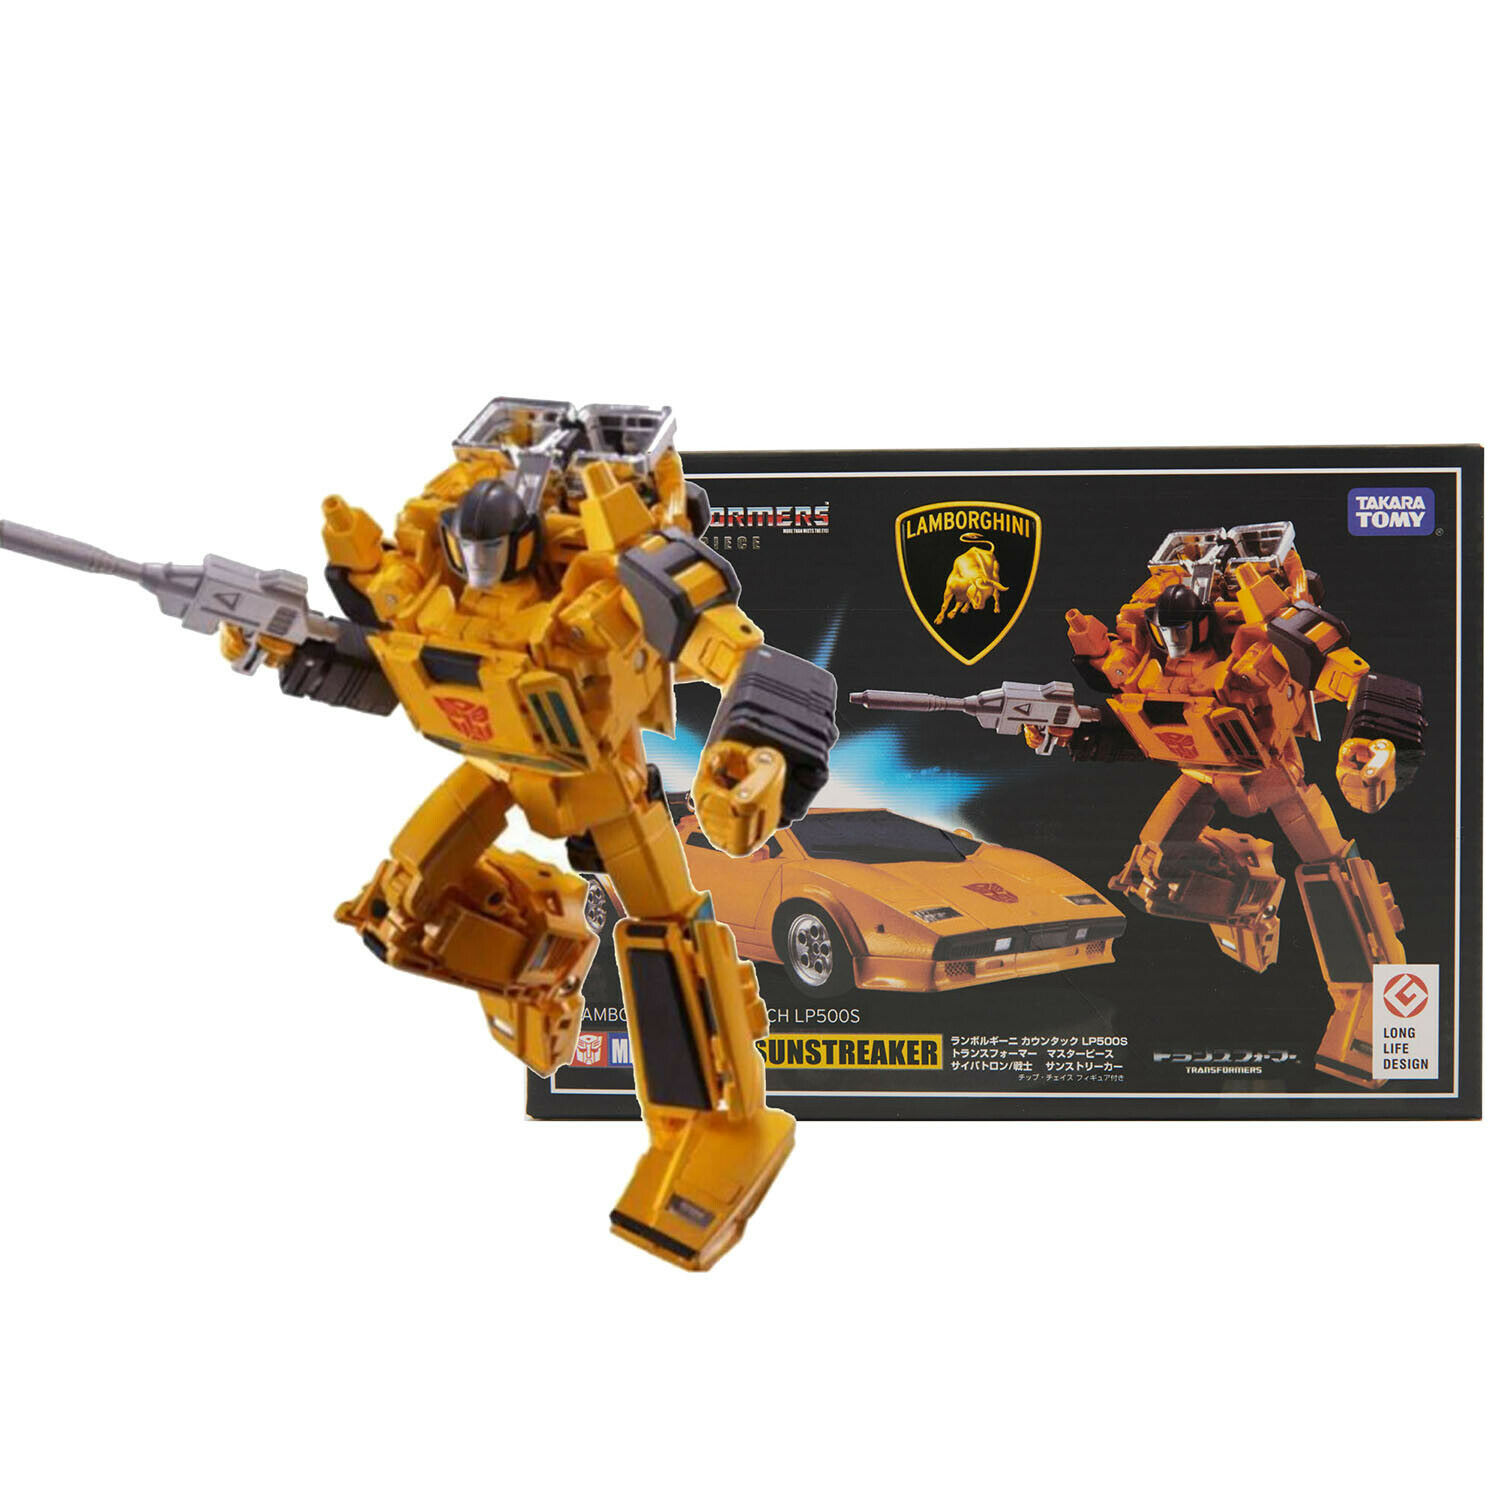 Transformers Masterpiece MP-39 MP39 SUNSTREAKER Autobots Action Figure Toy Gifts